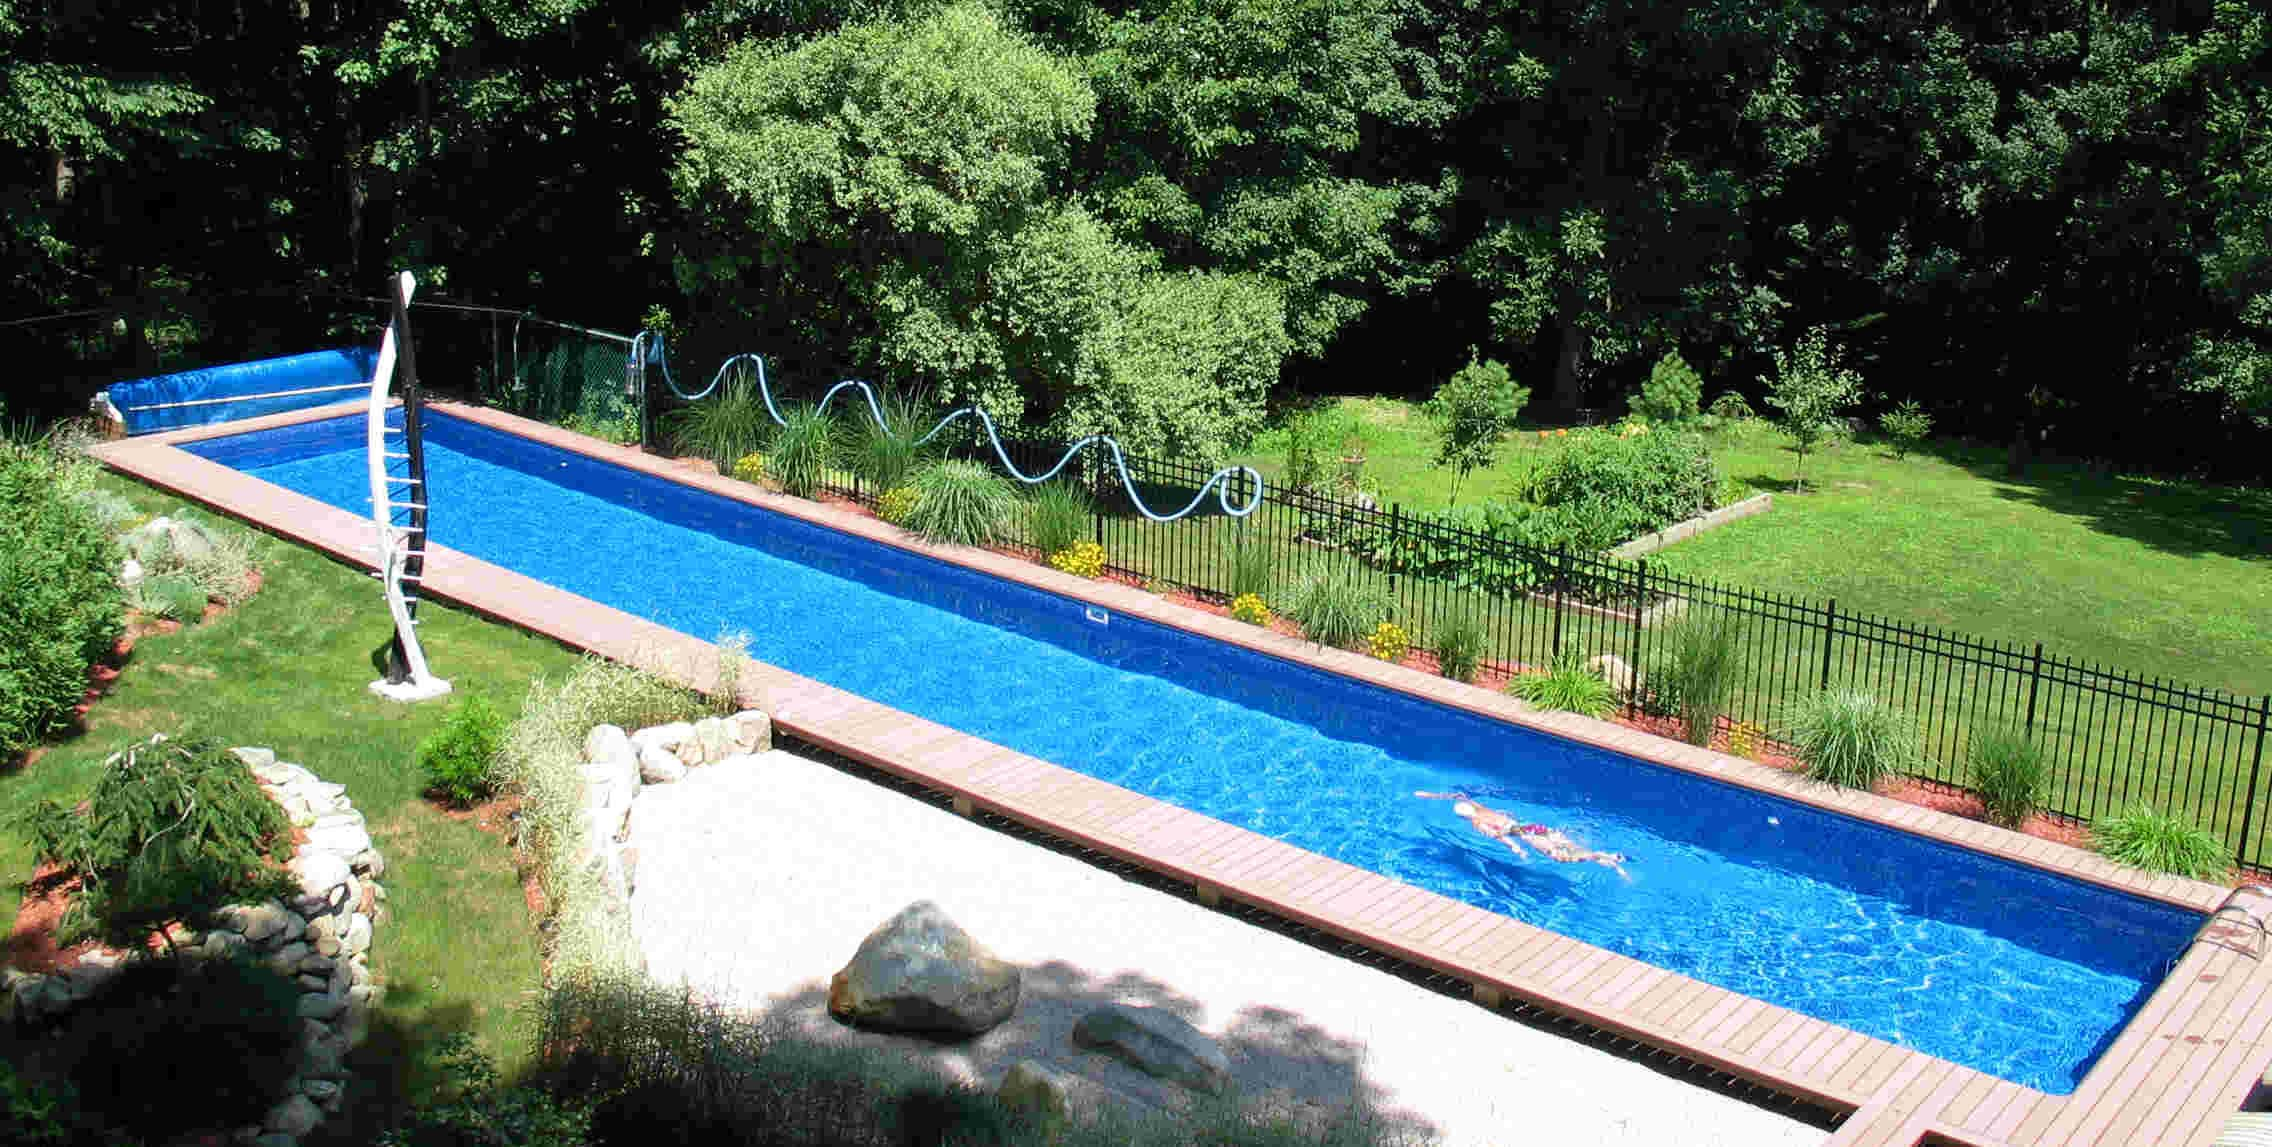 Diy inground swimming pool backyard design ideas for Pool and backyard design